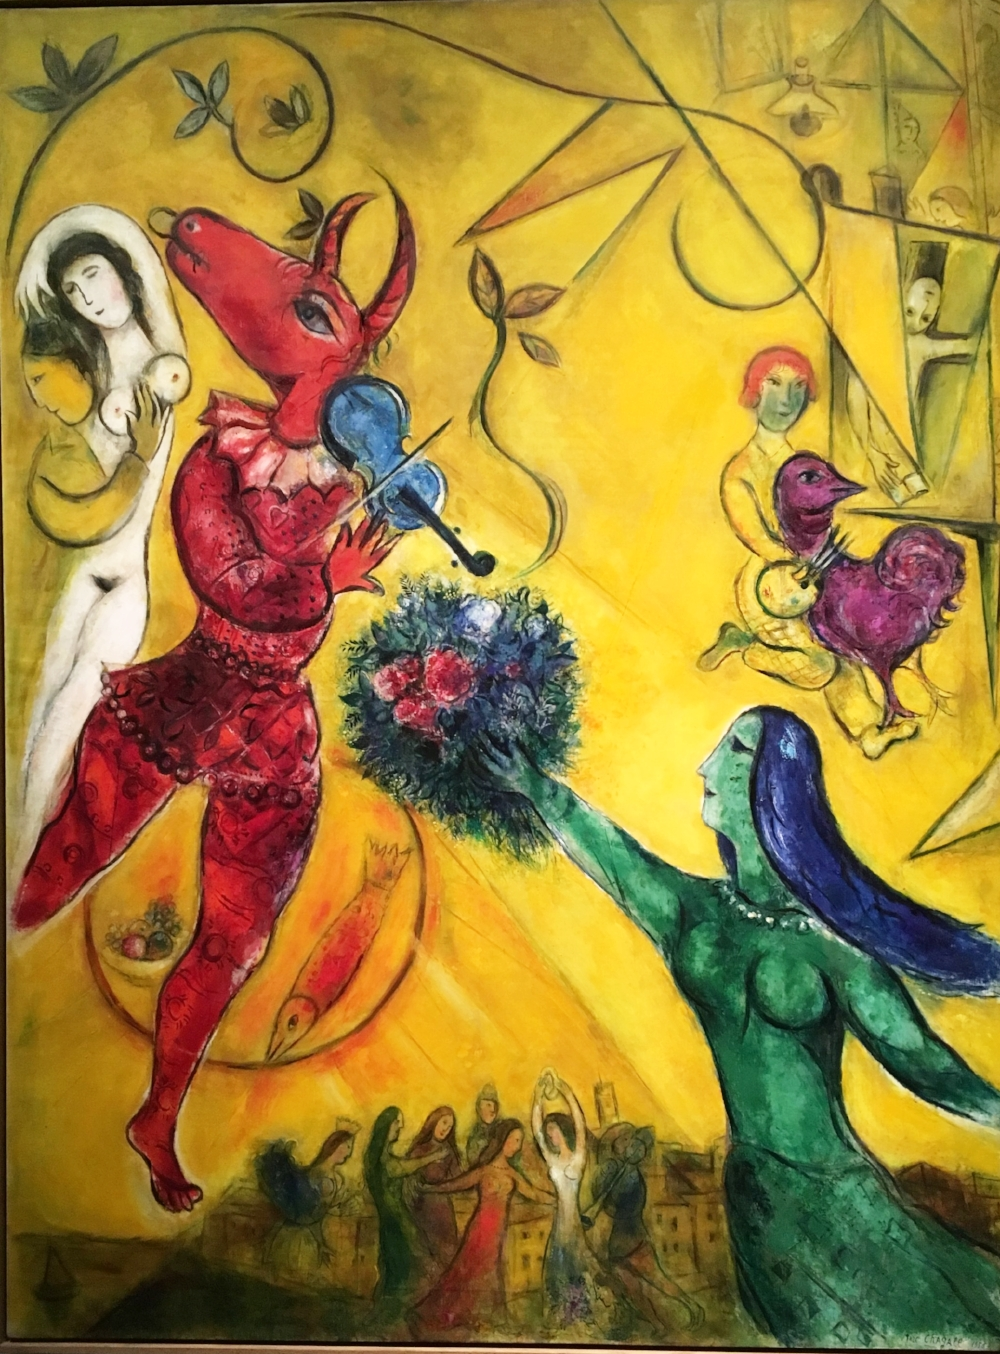 Chagall fantasies for the stage lacma talin spring springfinnandco set design costume design